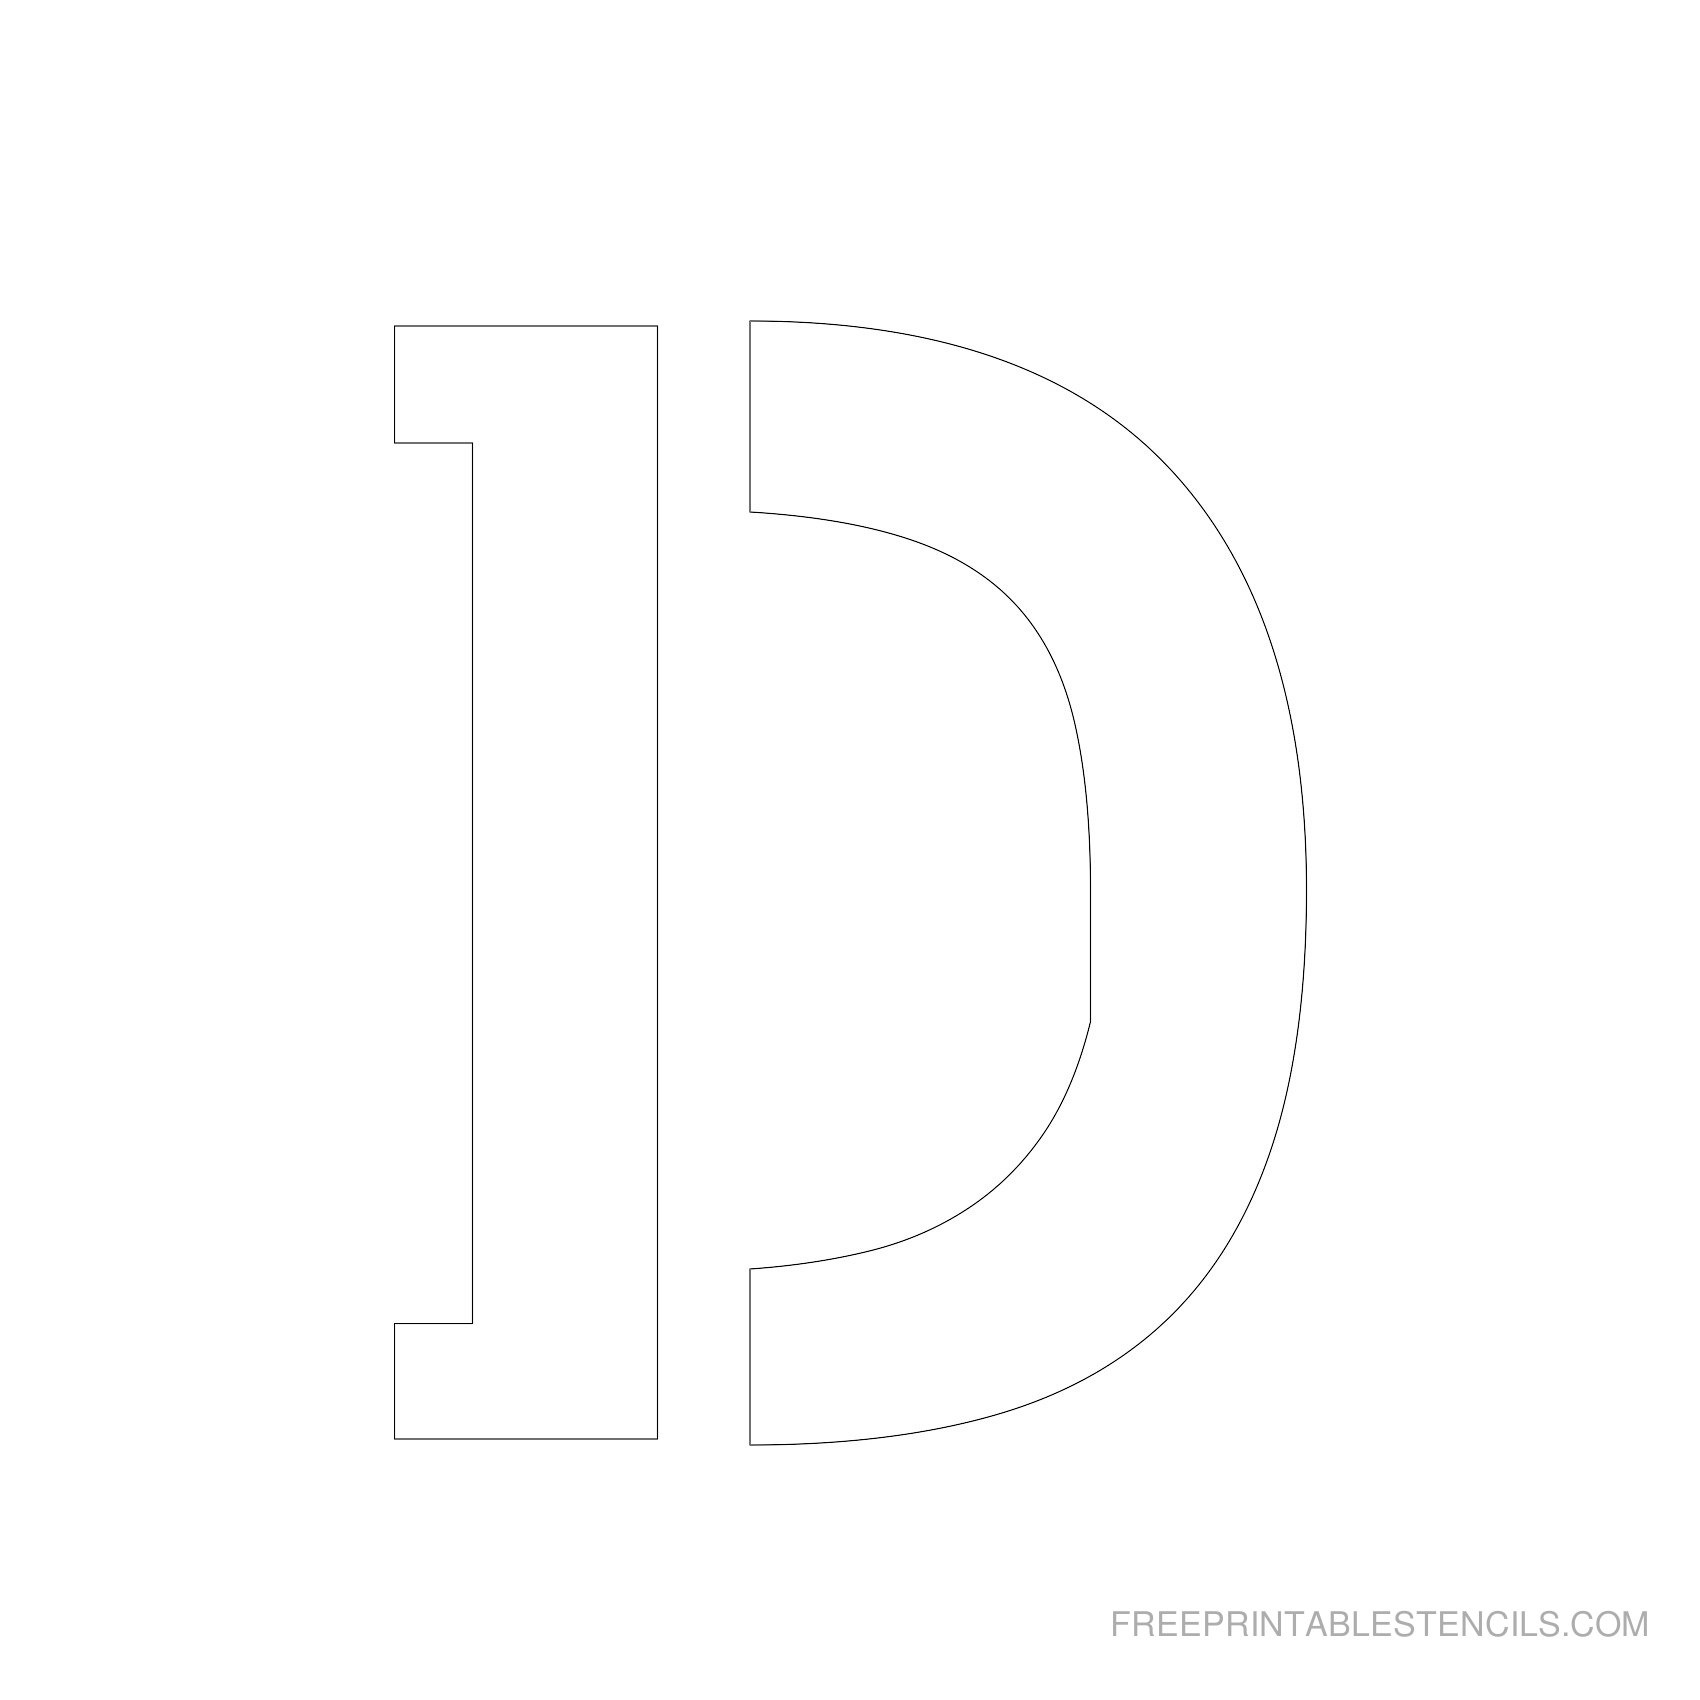 Letter Stencils To Print   Free Printable Stencils - Free Printable 10 Inch Letter Stencils